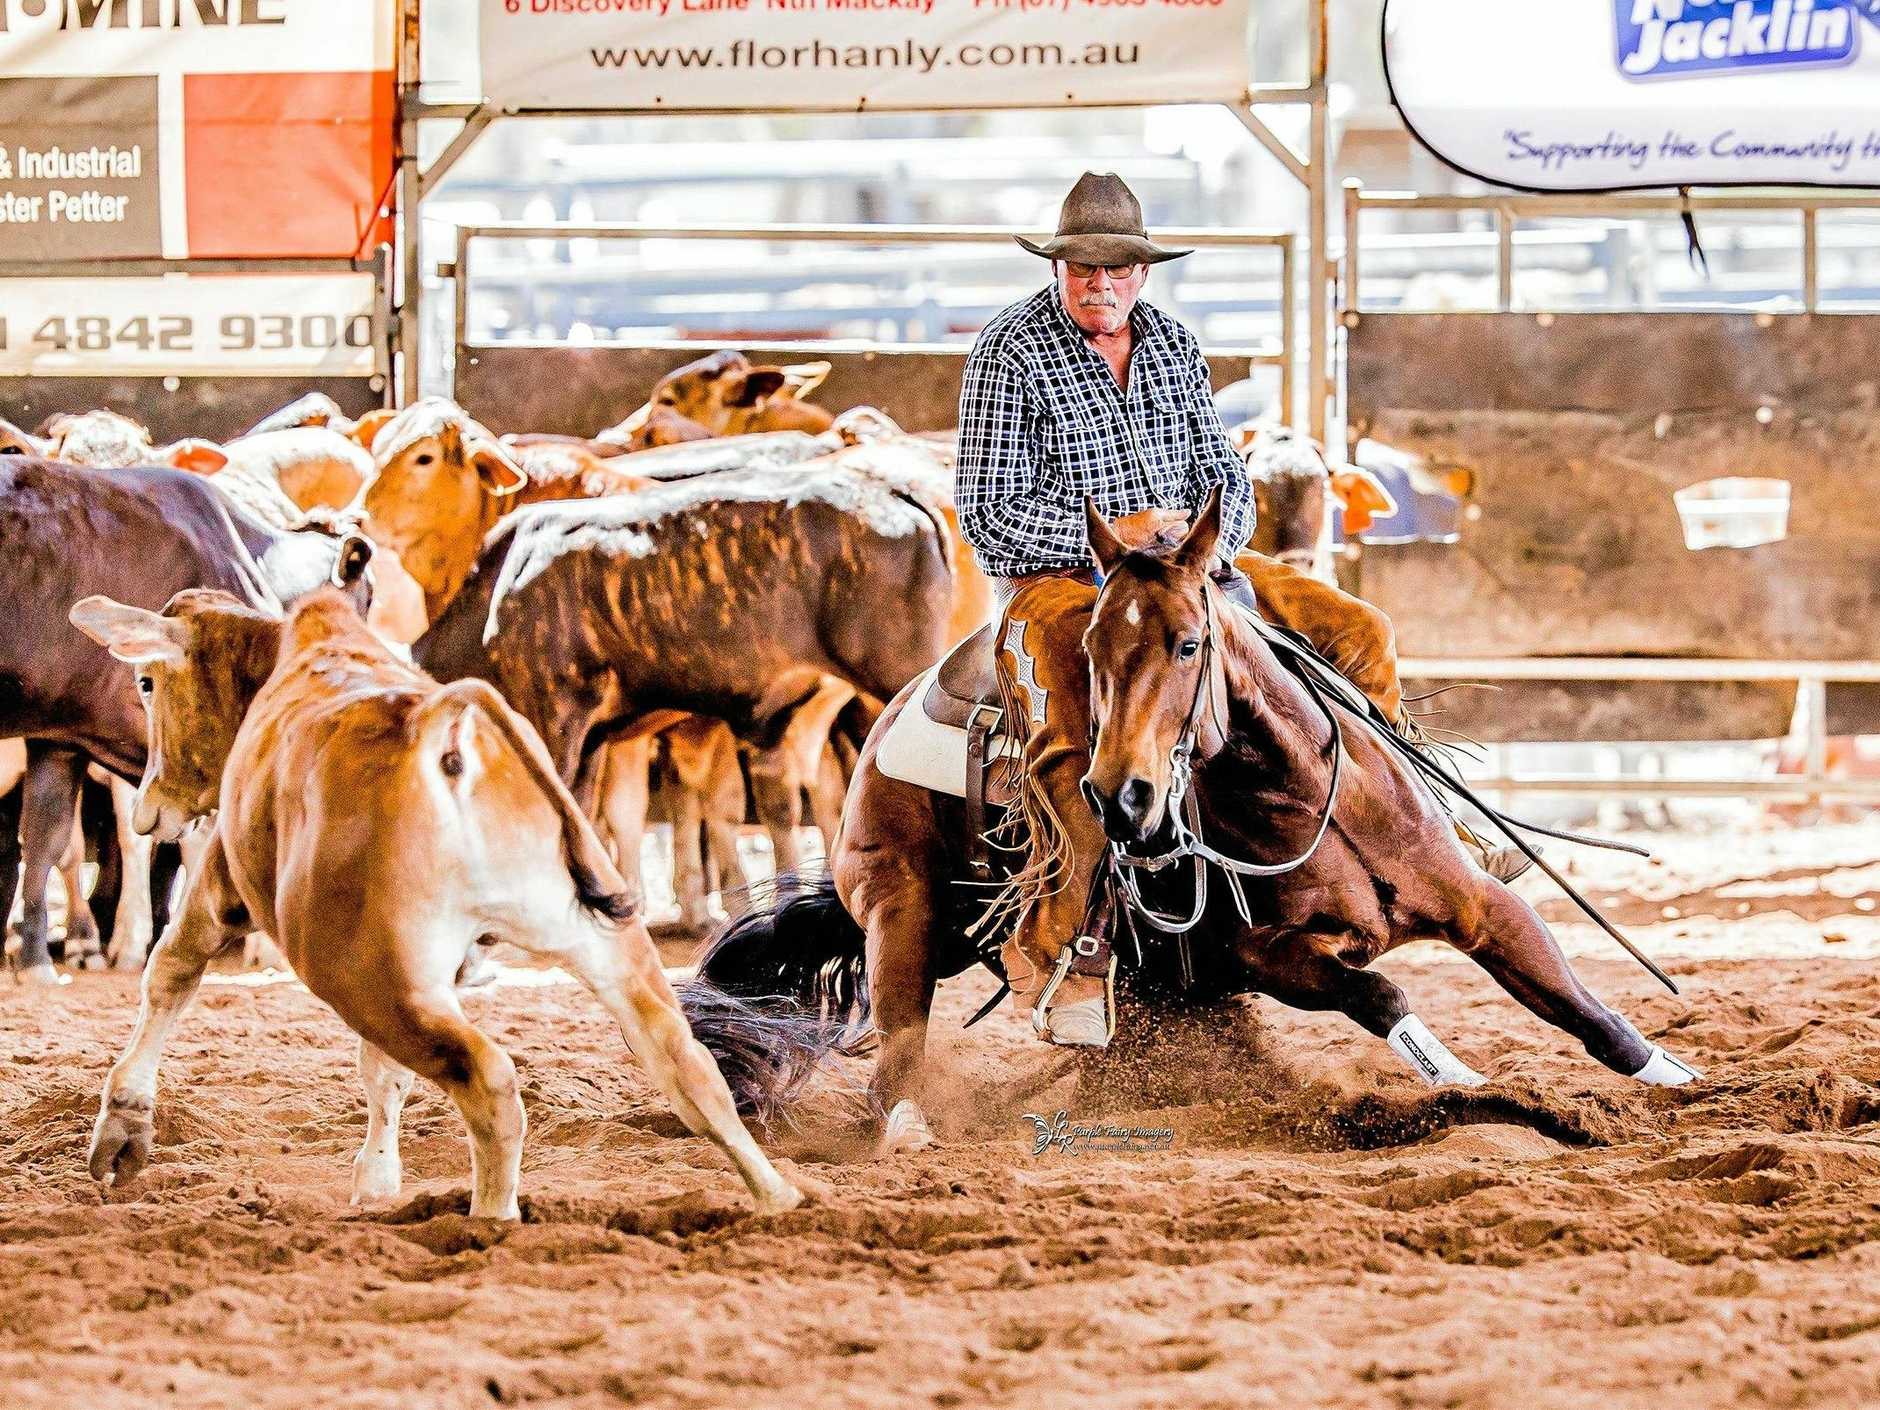 CUT ABOVE: Stanwell's John Howe has been inducted into the National Cutting Horse Association of Australia Heritage Hall of Fame.